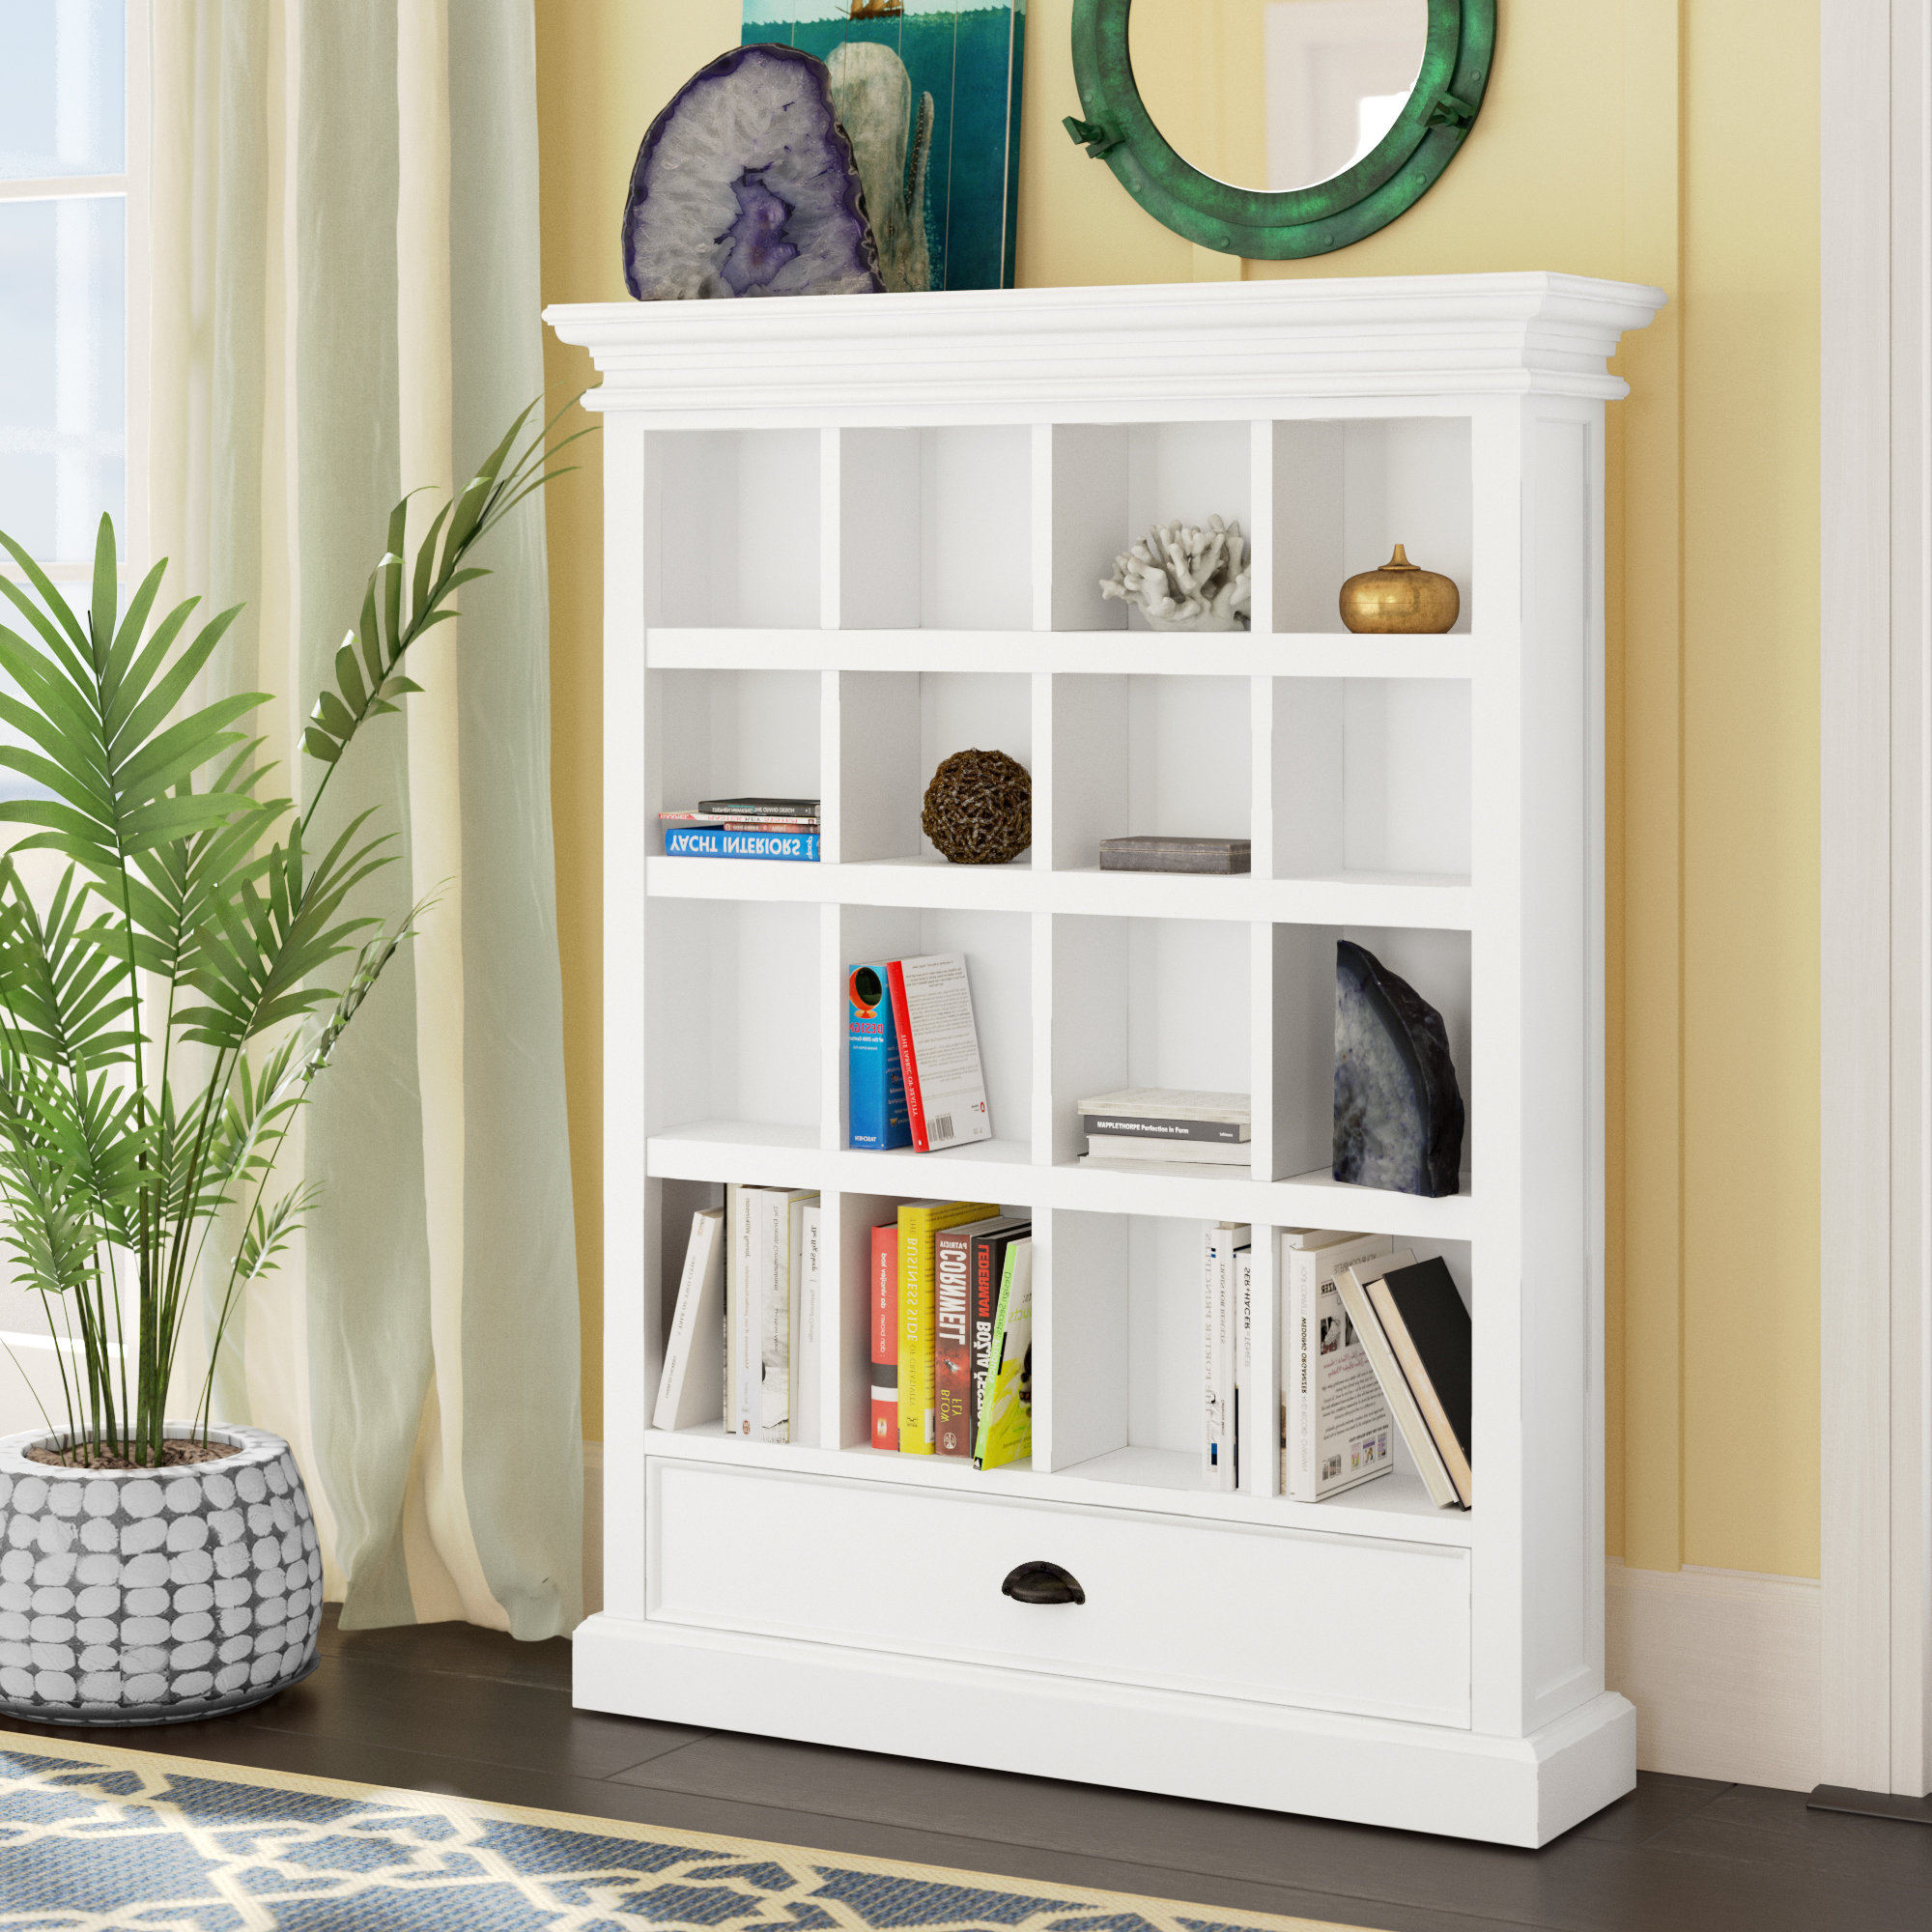 Amityville Cube Unit Bookcase Pertaining To Most Up To Date Karlie Cube Unit Bookcases (View 6 of 20)